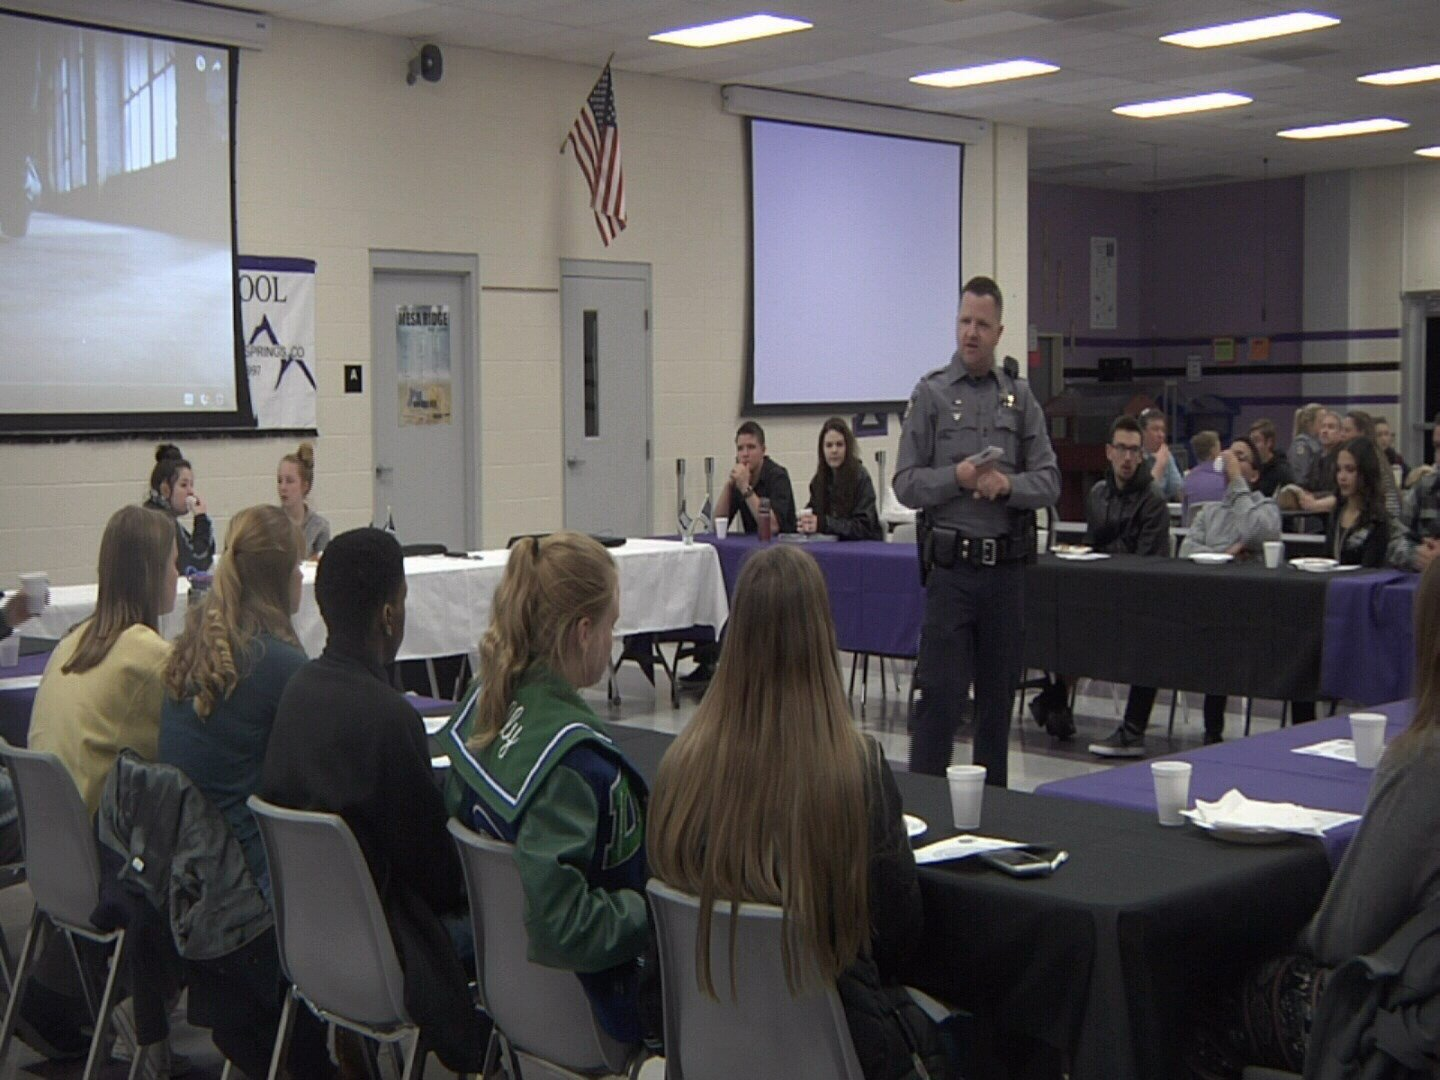 Youth Advisory Council meets at Mesa Ridge High School